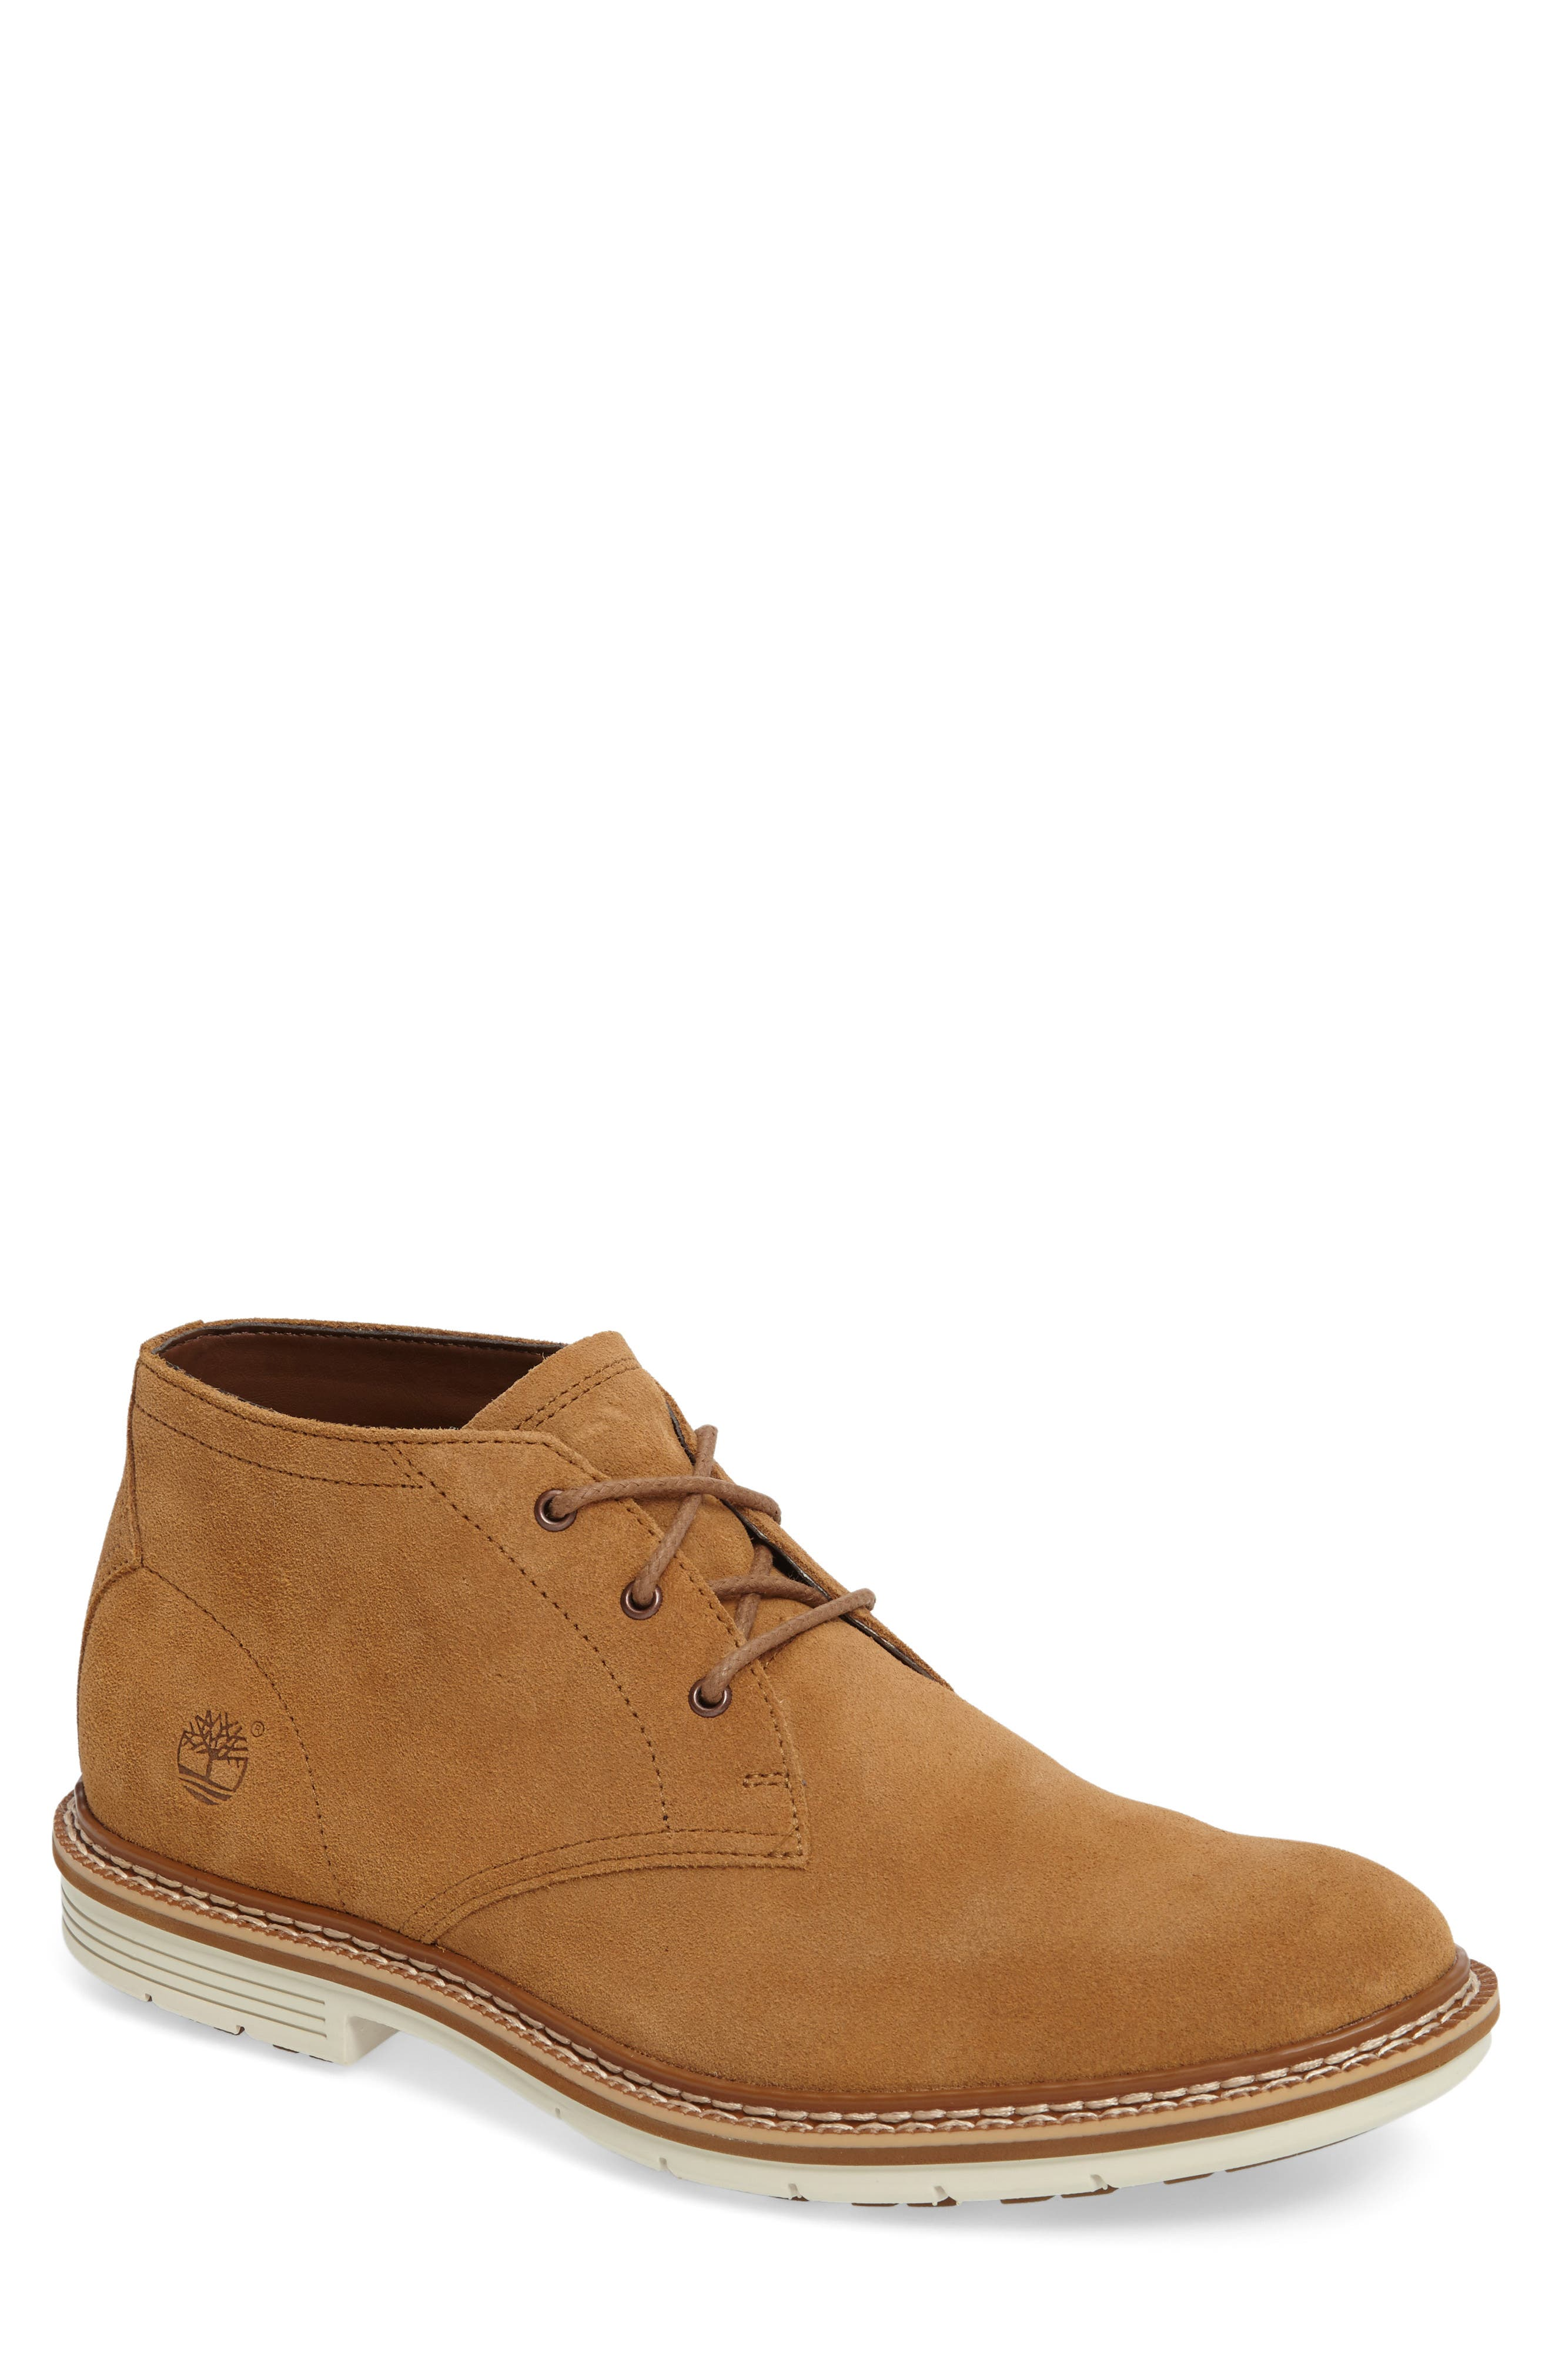 Naples Trail Chukka Boot,                             Main thumbnail 1, color,                             Rubber Suede